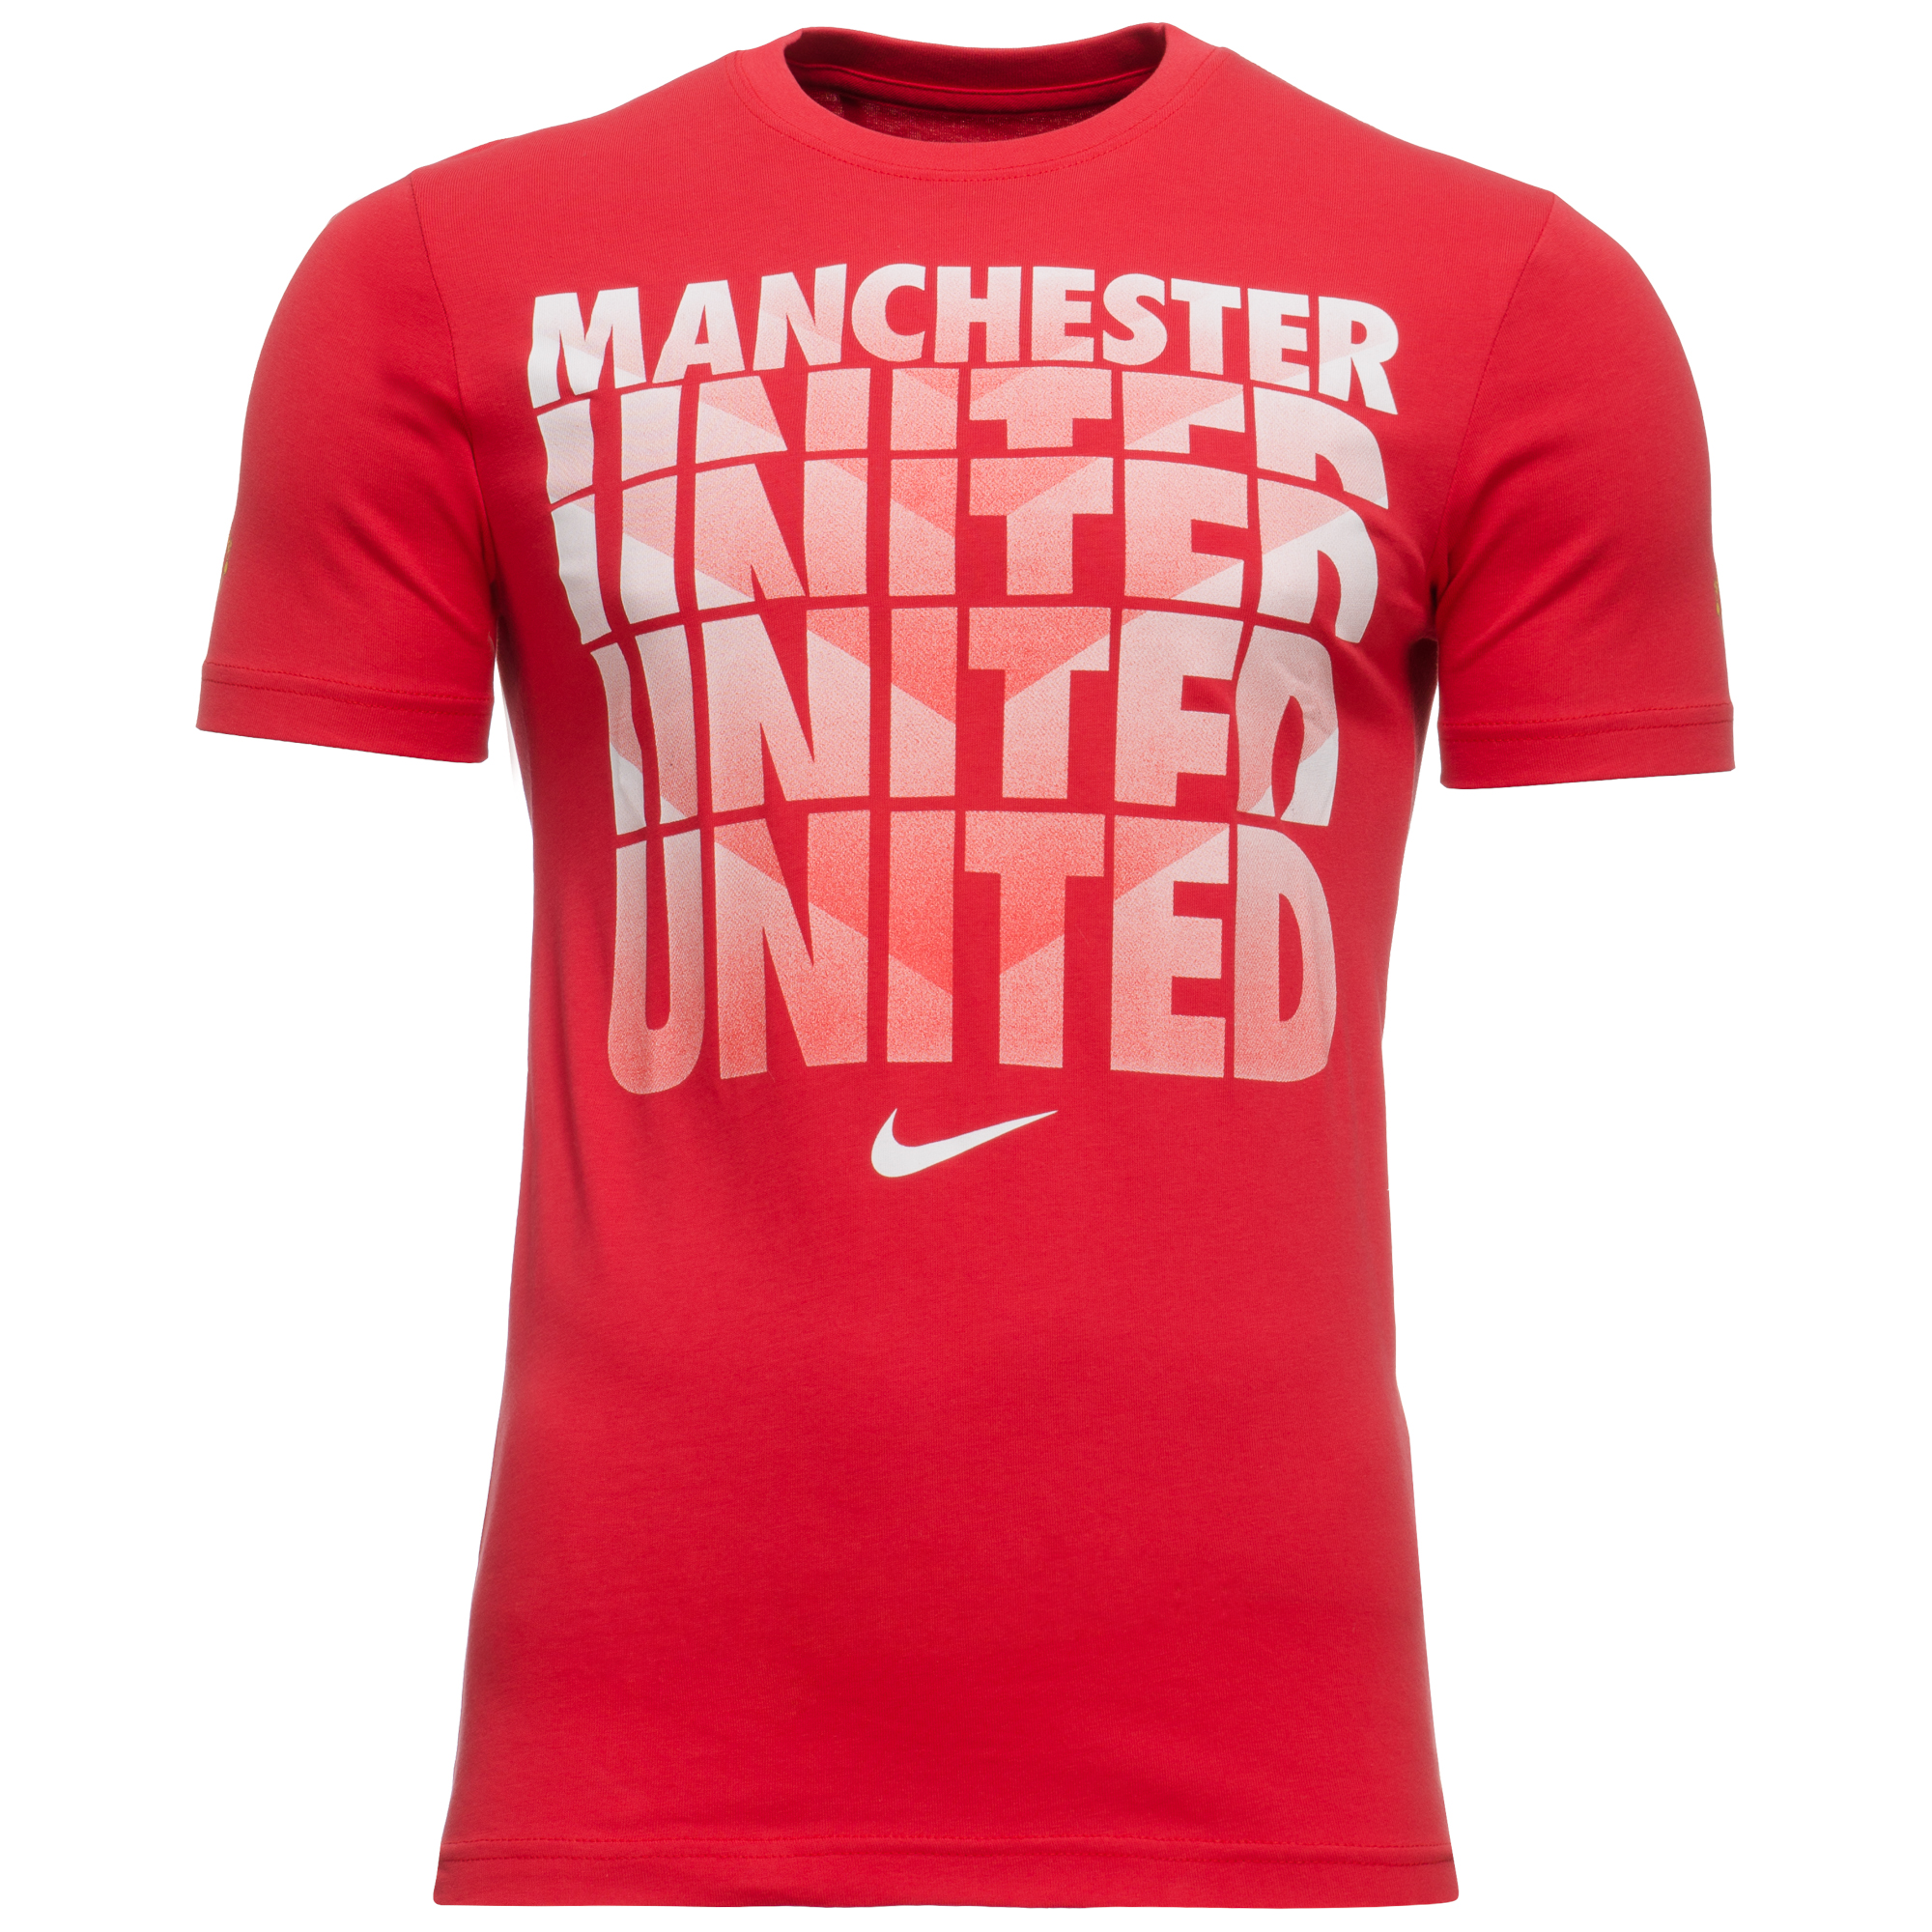 Nike Manchester United T Shirt Core Diablo Red Www